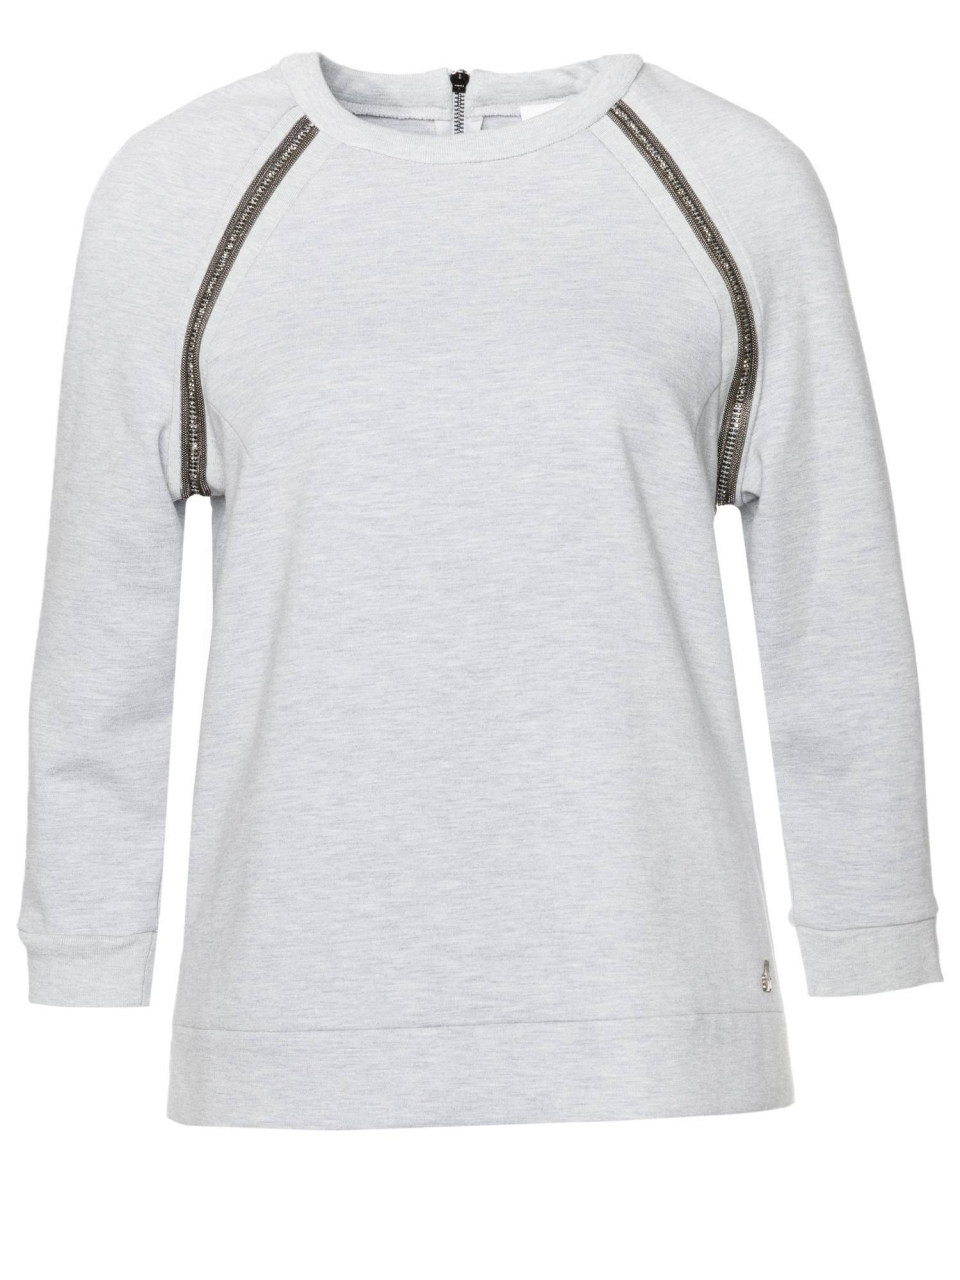 Mos Mosh Sweatshirt Sunday Blouse